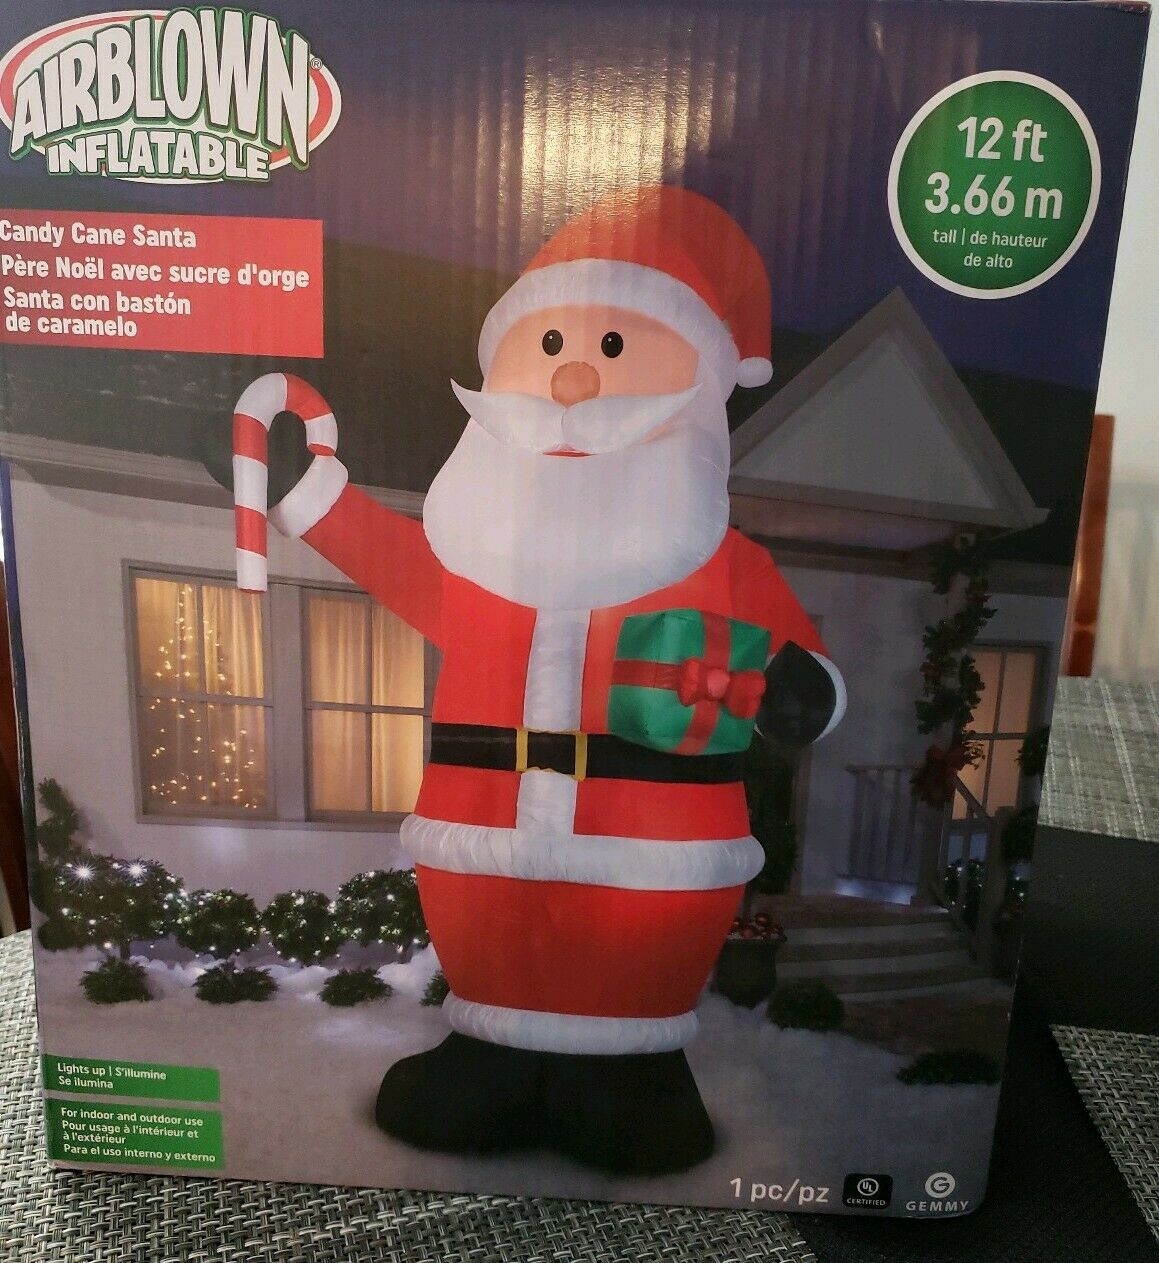 Sucre D Orge Exterieur christmas santa candy cane & gift 12 ft tall airblown inflatable yard led